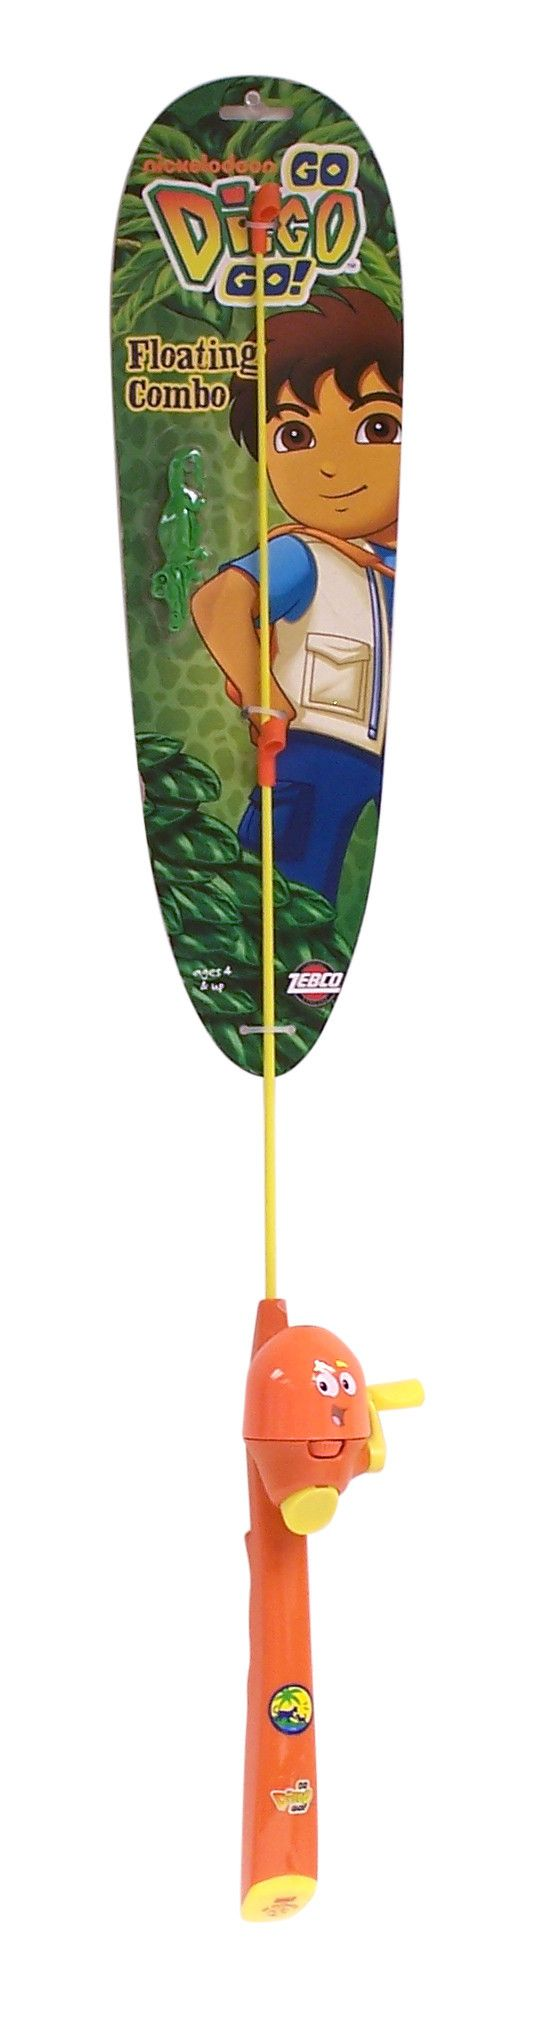 DIEGO FLOATING COMBO - ZEB-DIEGOFG-06-FB6 - by Zebco Sales Co. LLC